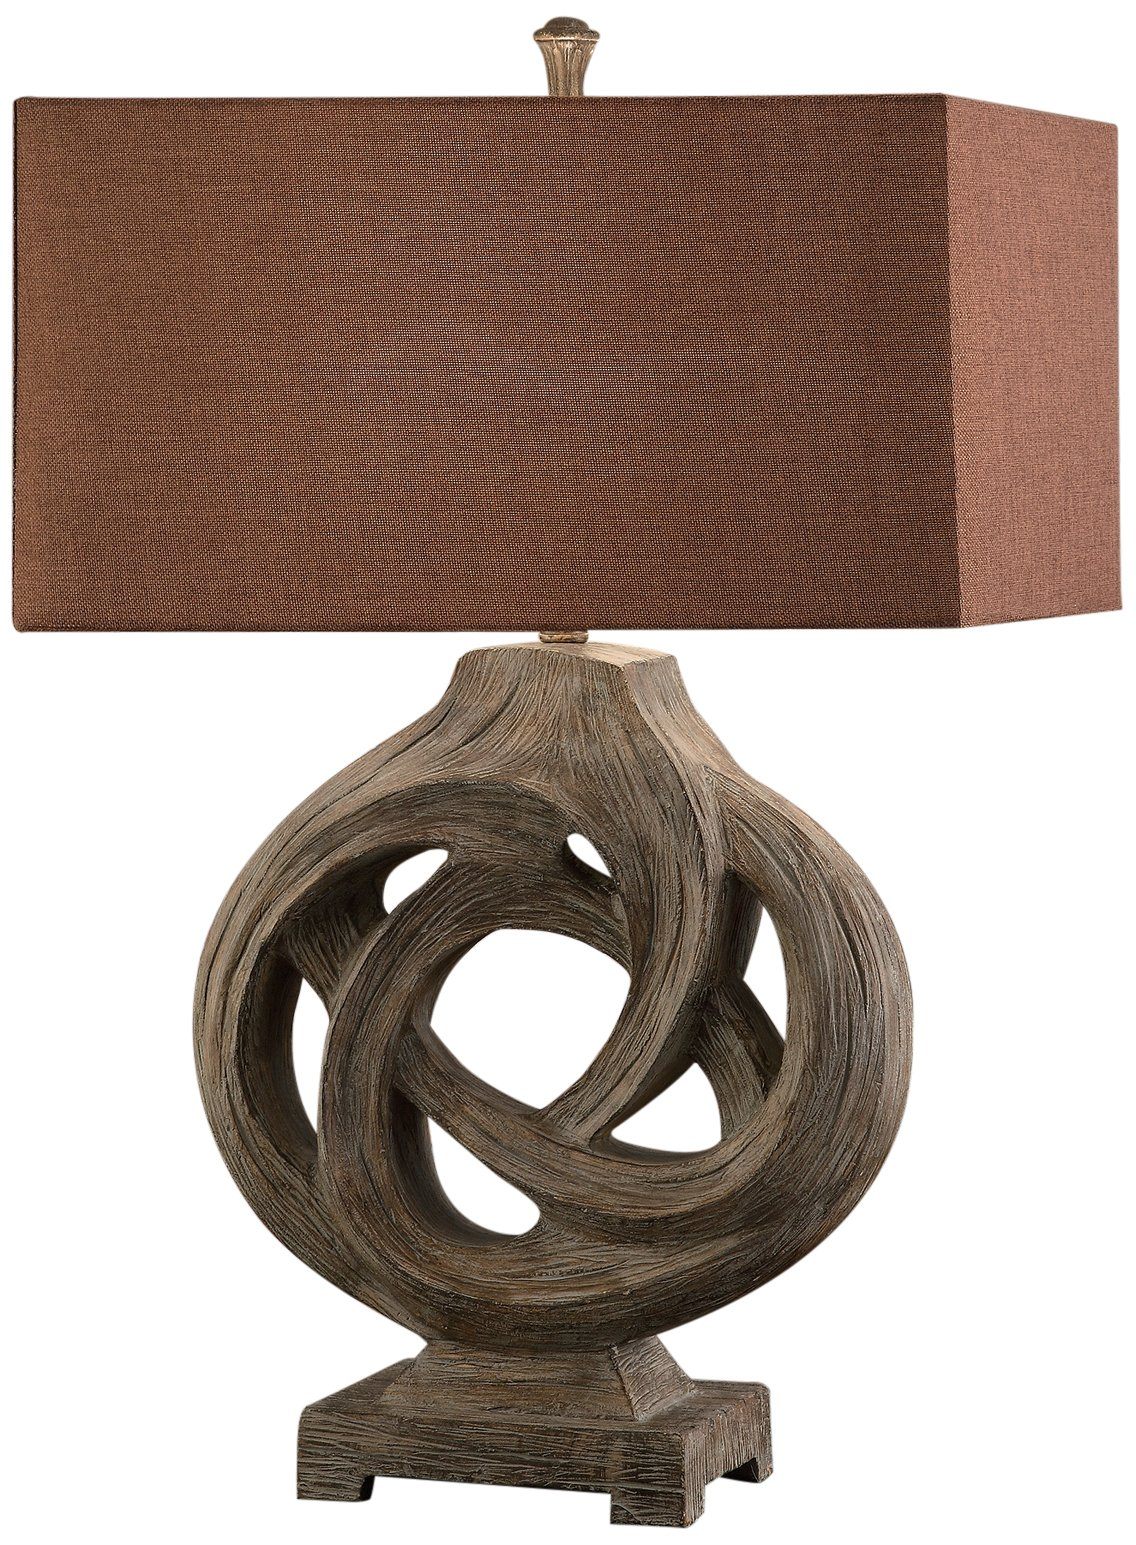 Crestview CVAUP687 Coiled Branch Table Lamp